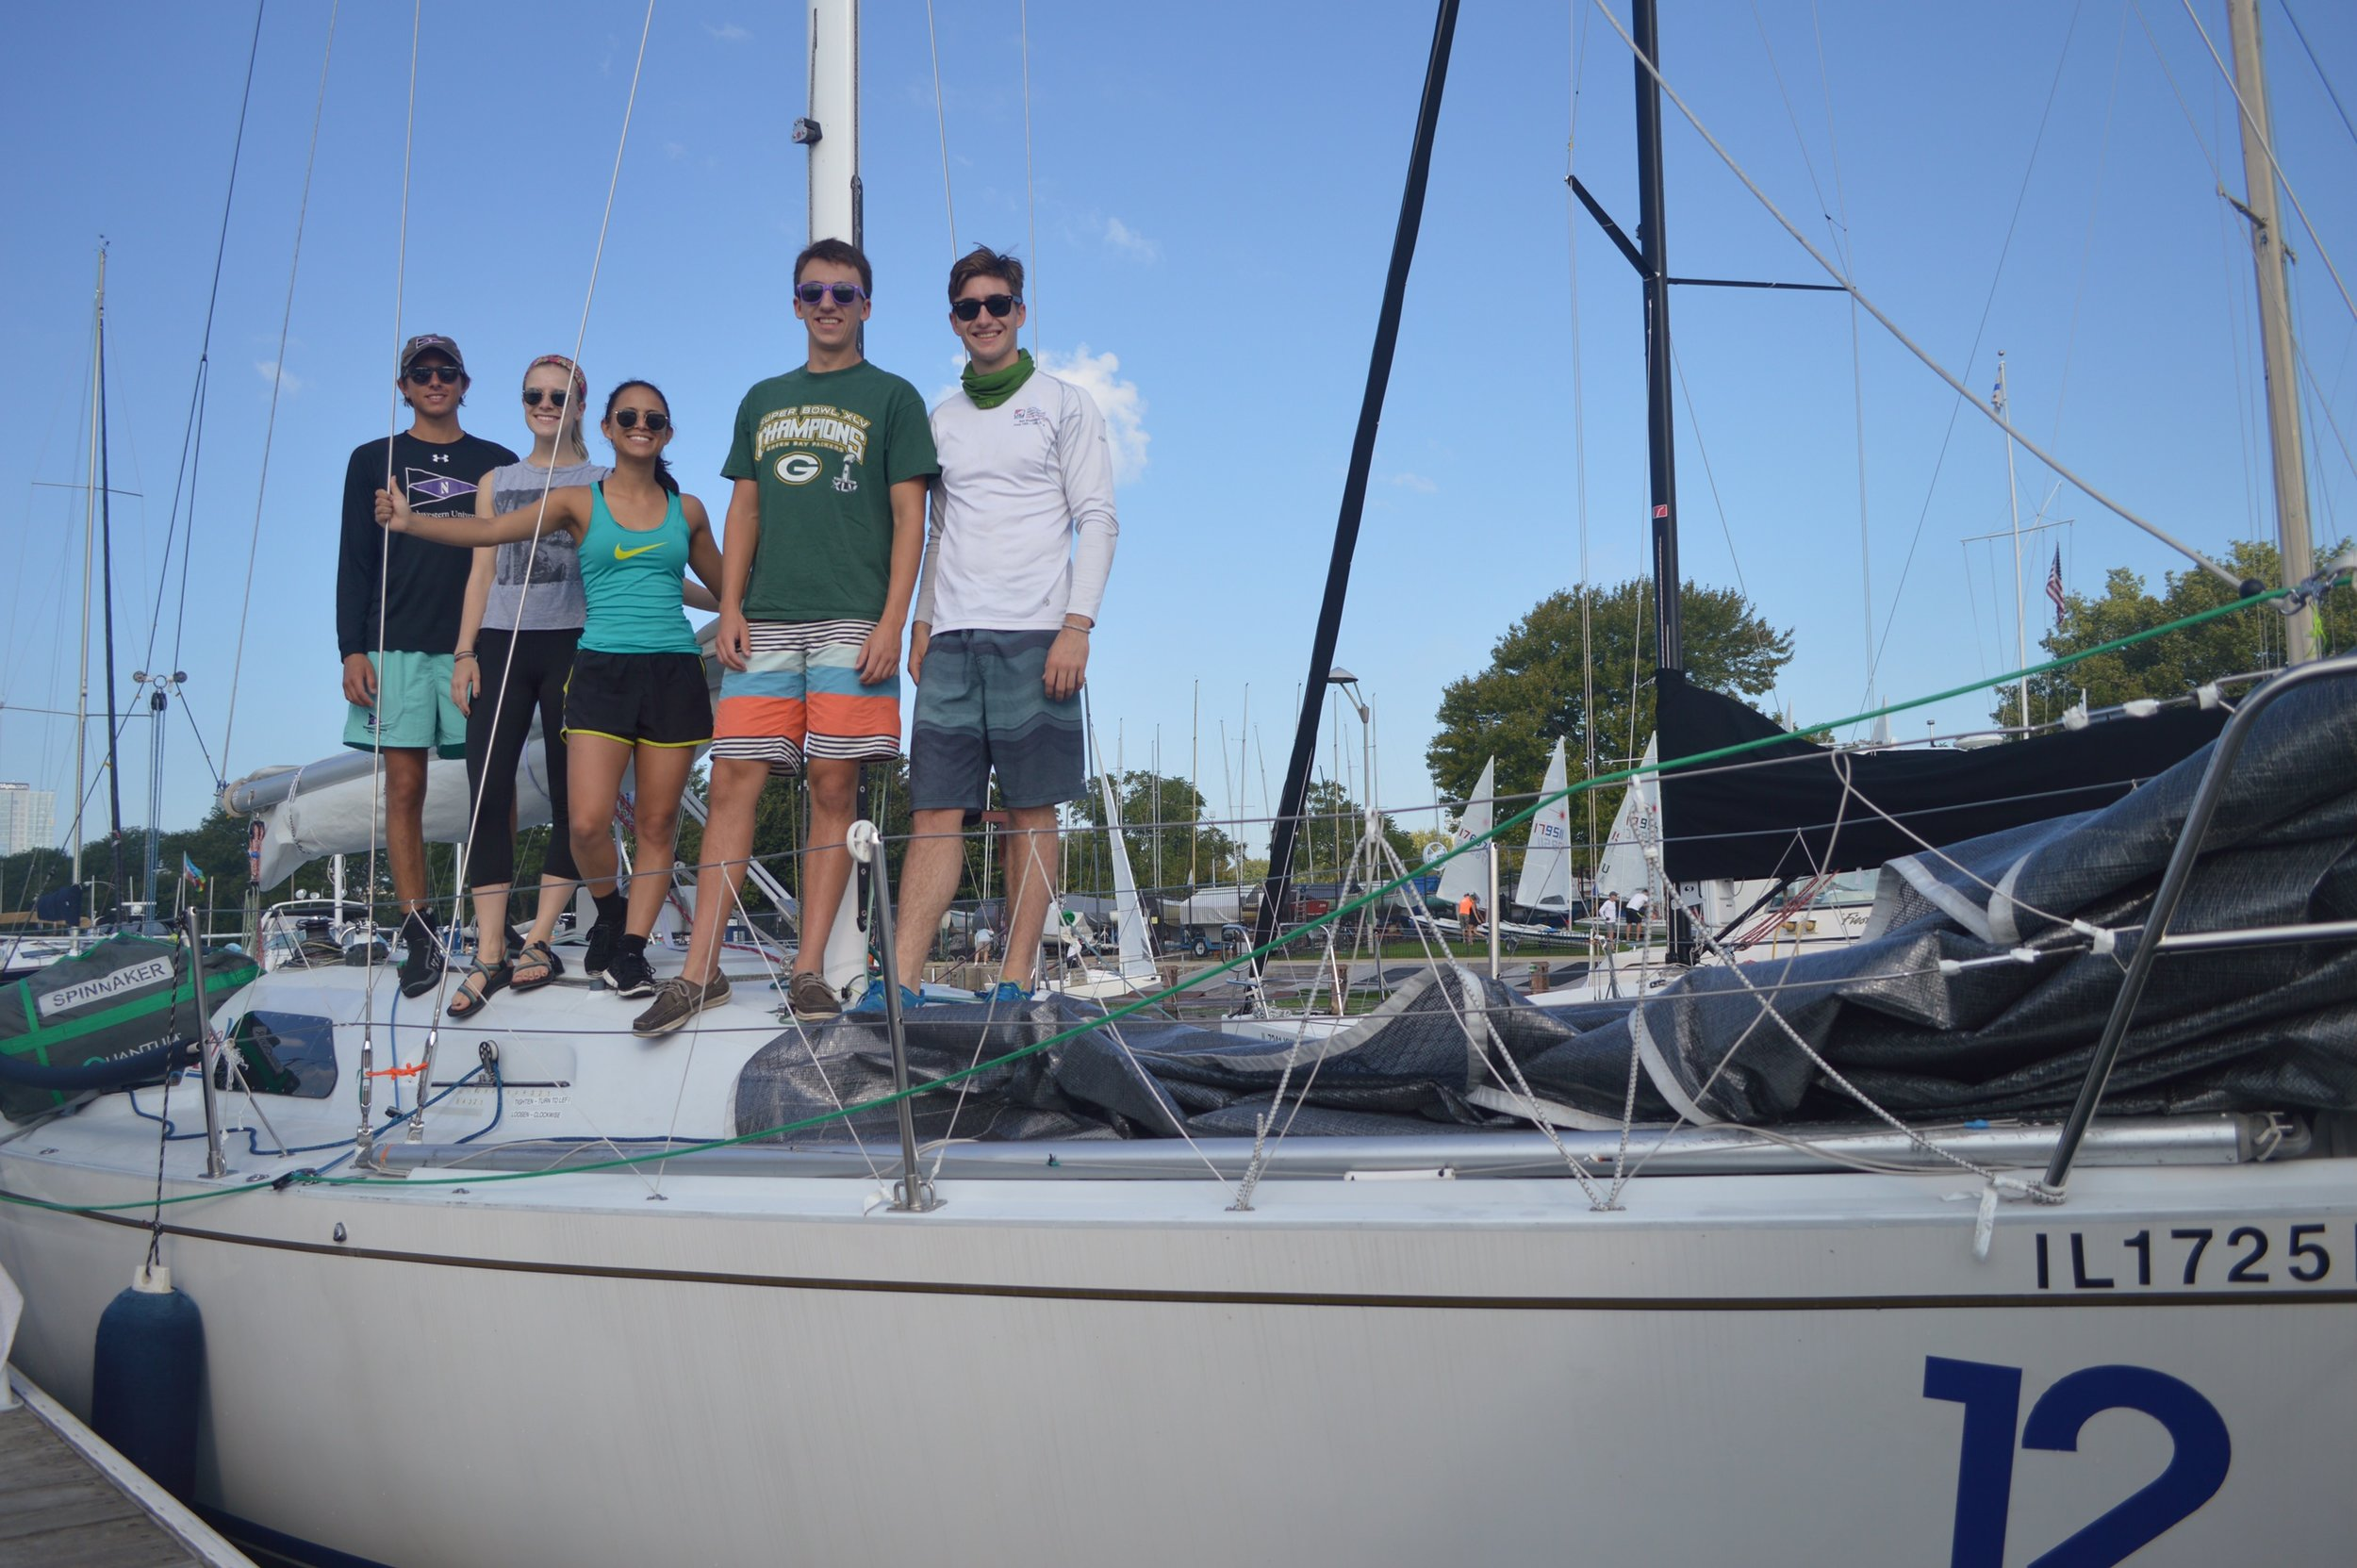 9/14-9/16Great Lakes IntercollegiateOffshore Regatta (GLIOR) - NUST had lots of fun at our local Chicago Corinthian Yacht Club sailing in offshore keelboats!